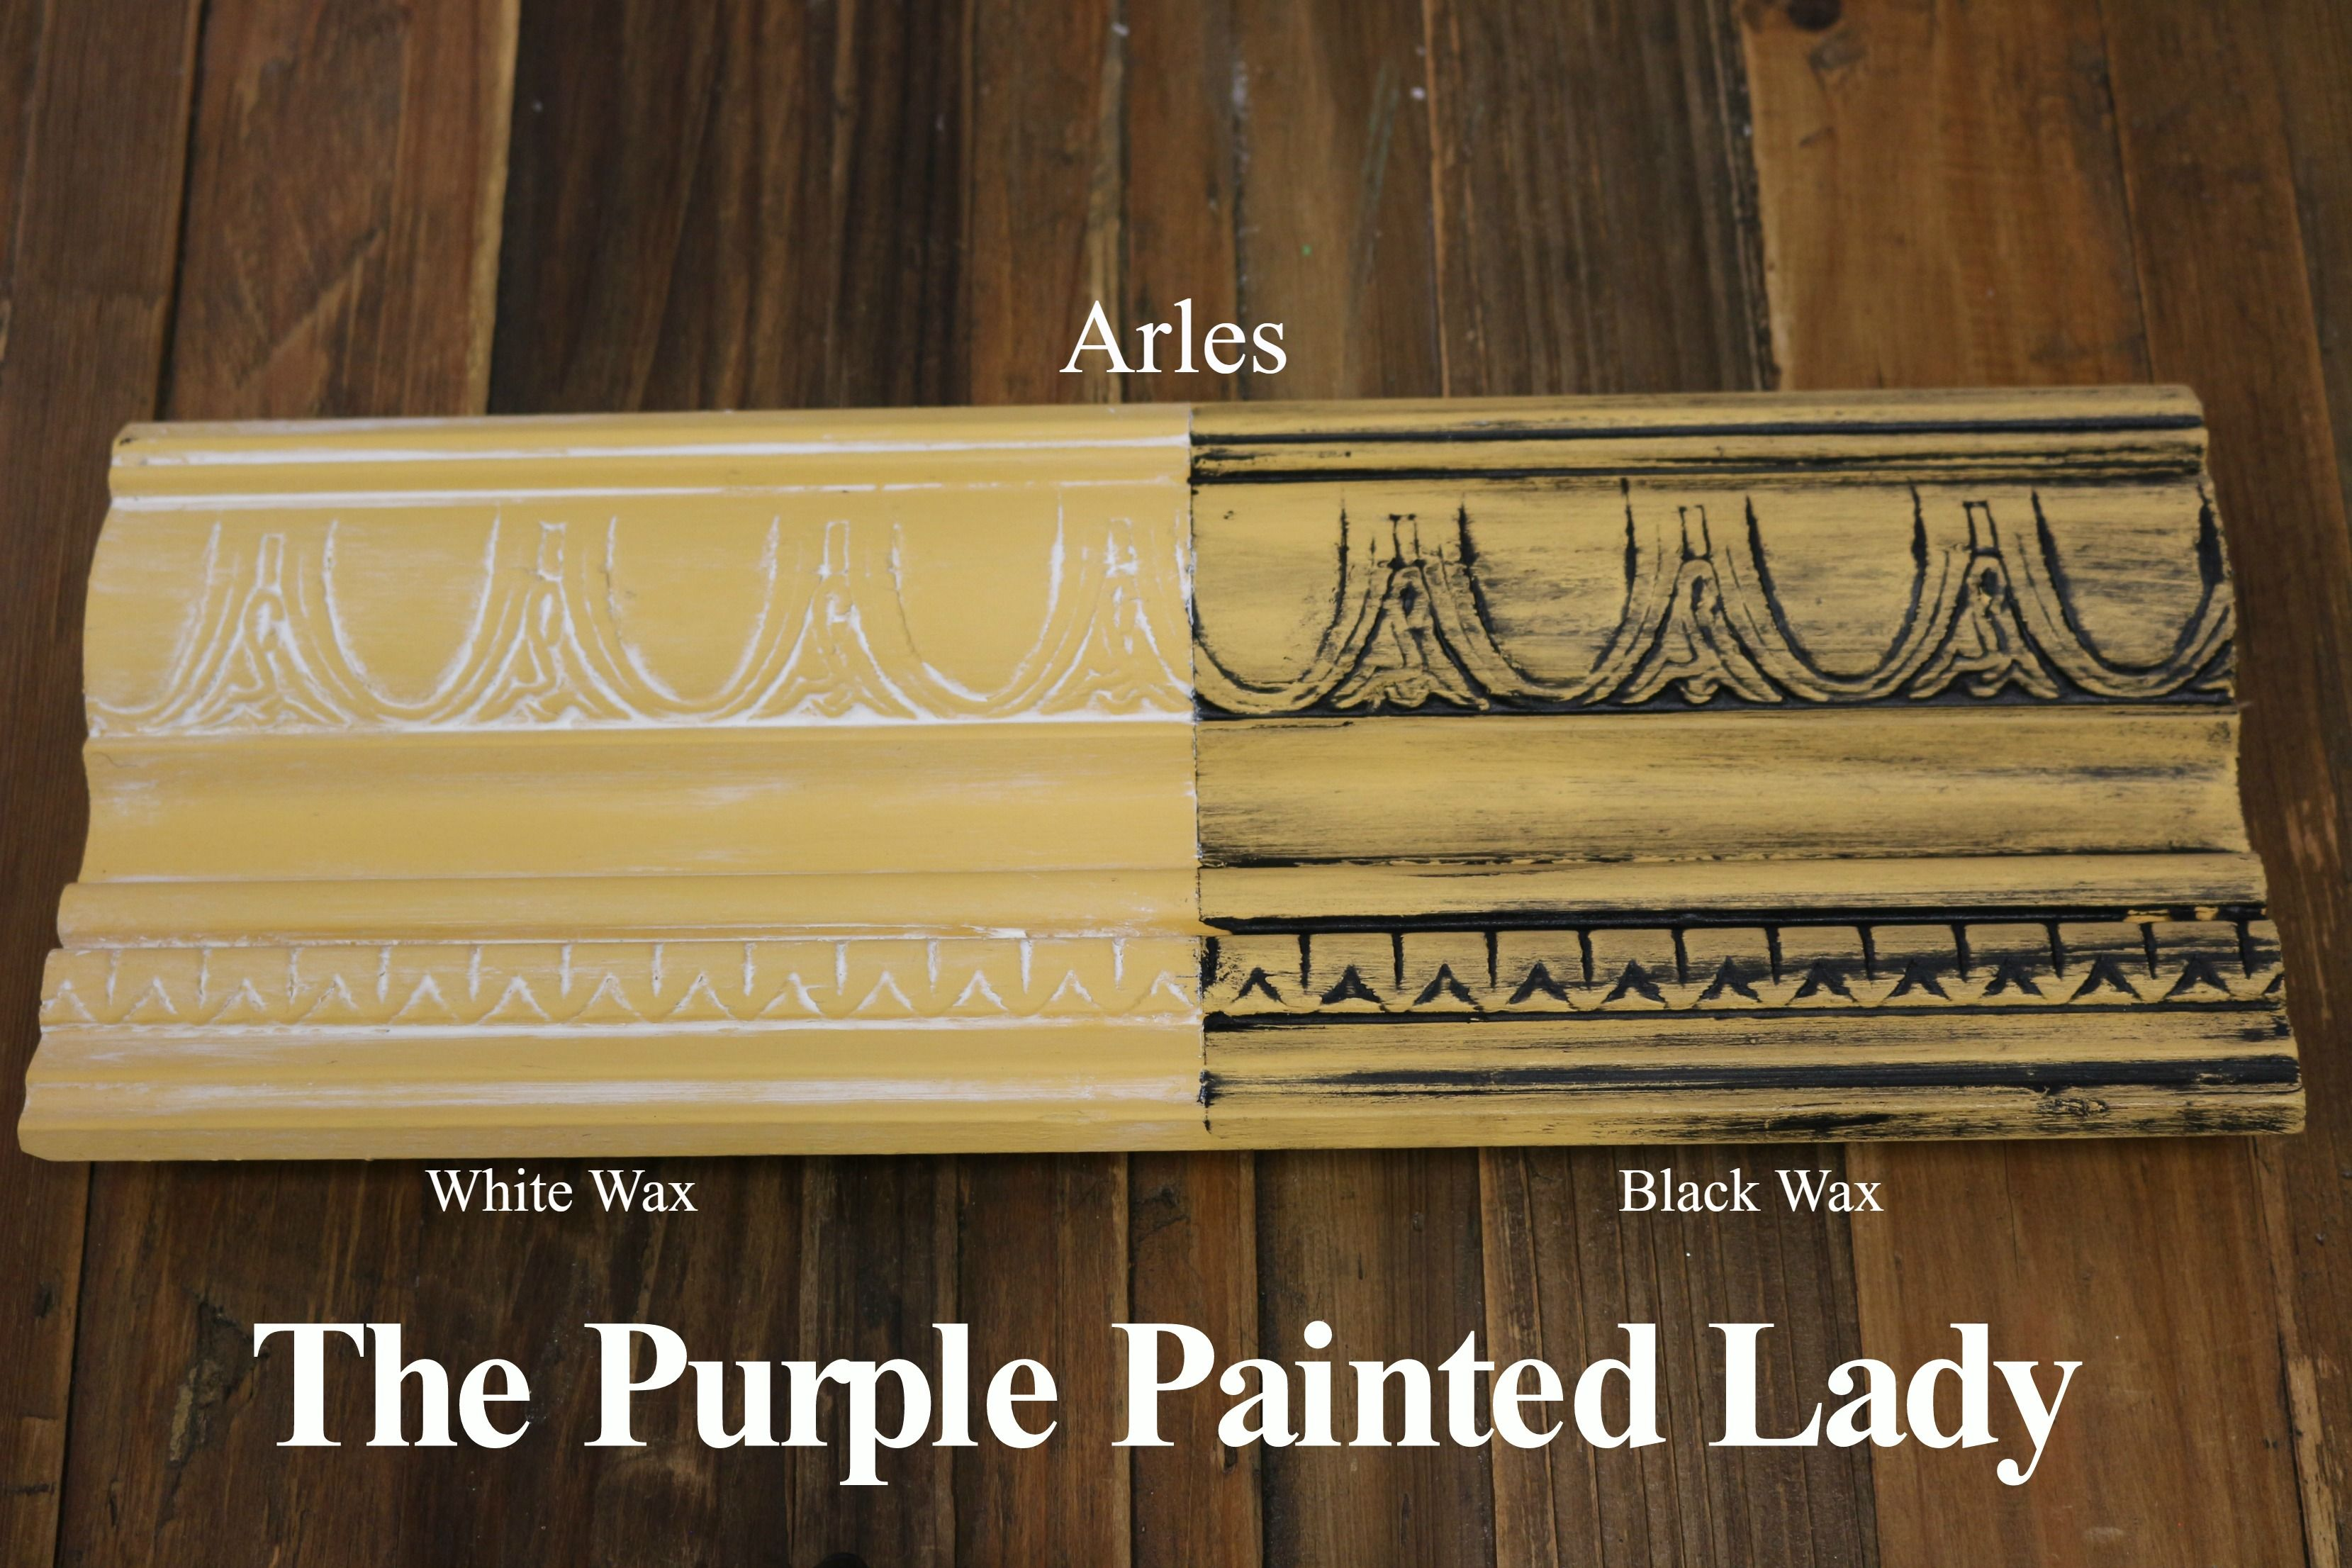 The Purple Painted Lady Two Coats Of Arles Chalk Paint By Annie Sloan Then One Coat Clear Wax Over Entire Board White On